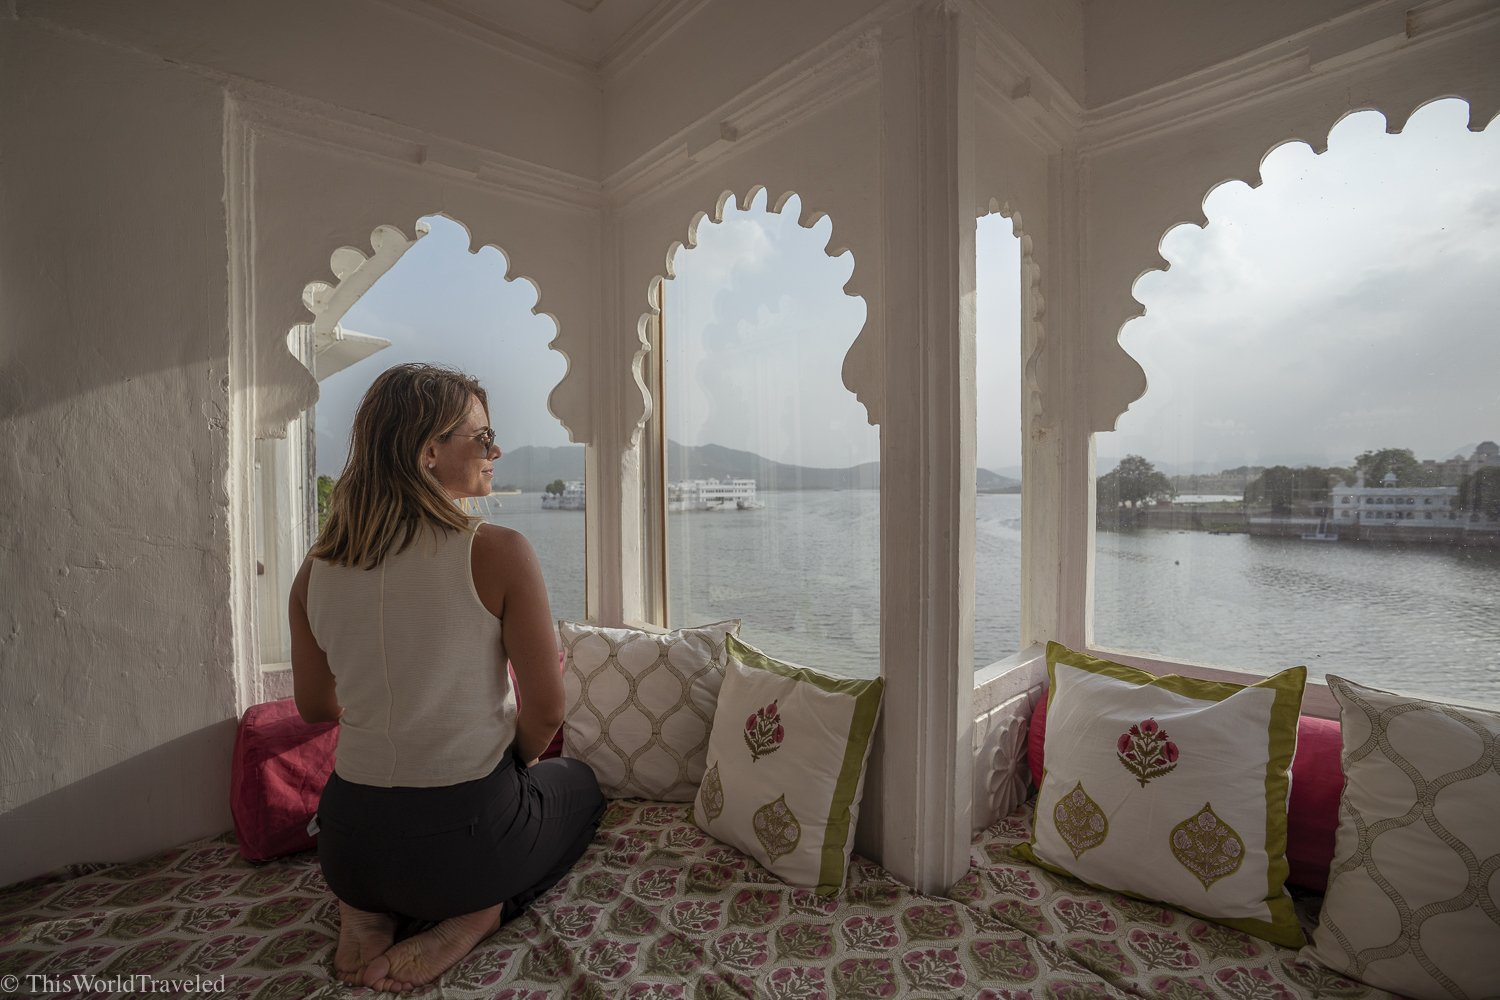 girl sitting on cushions looking out through white windows to the view of the lake